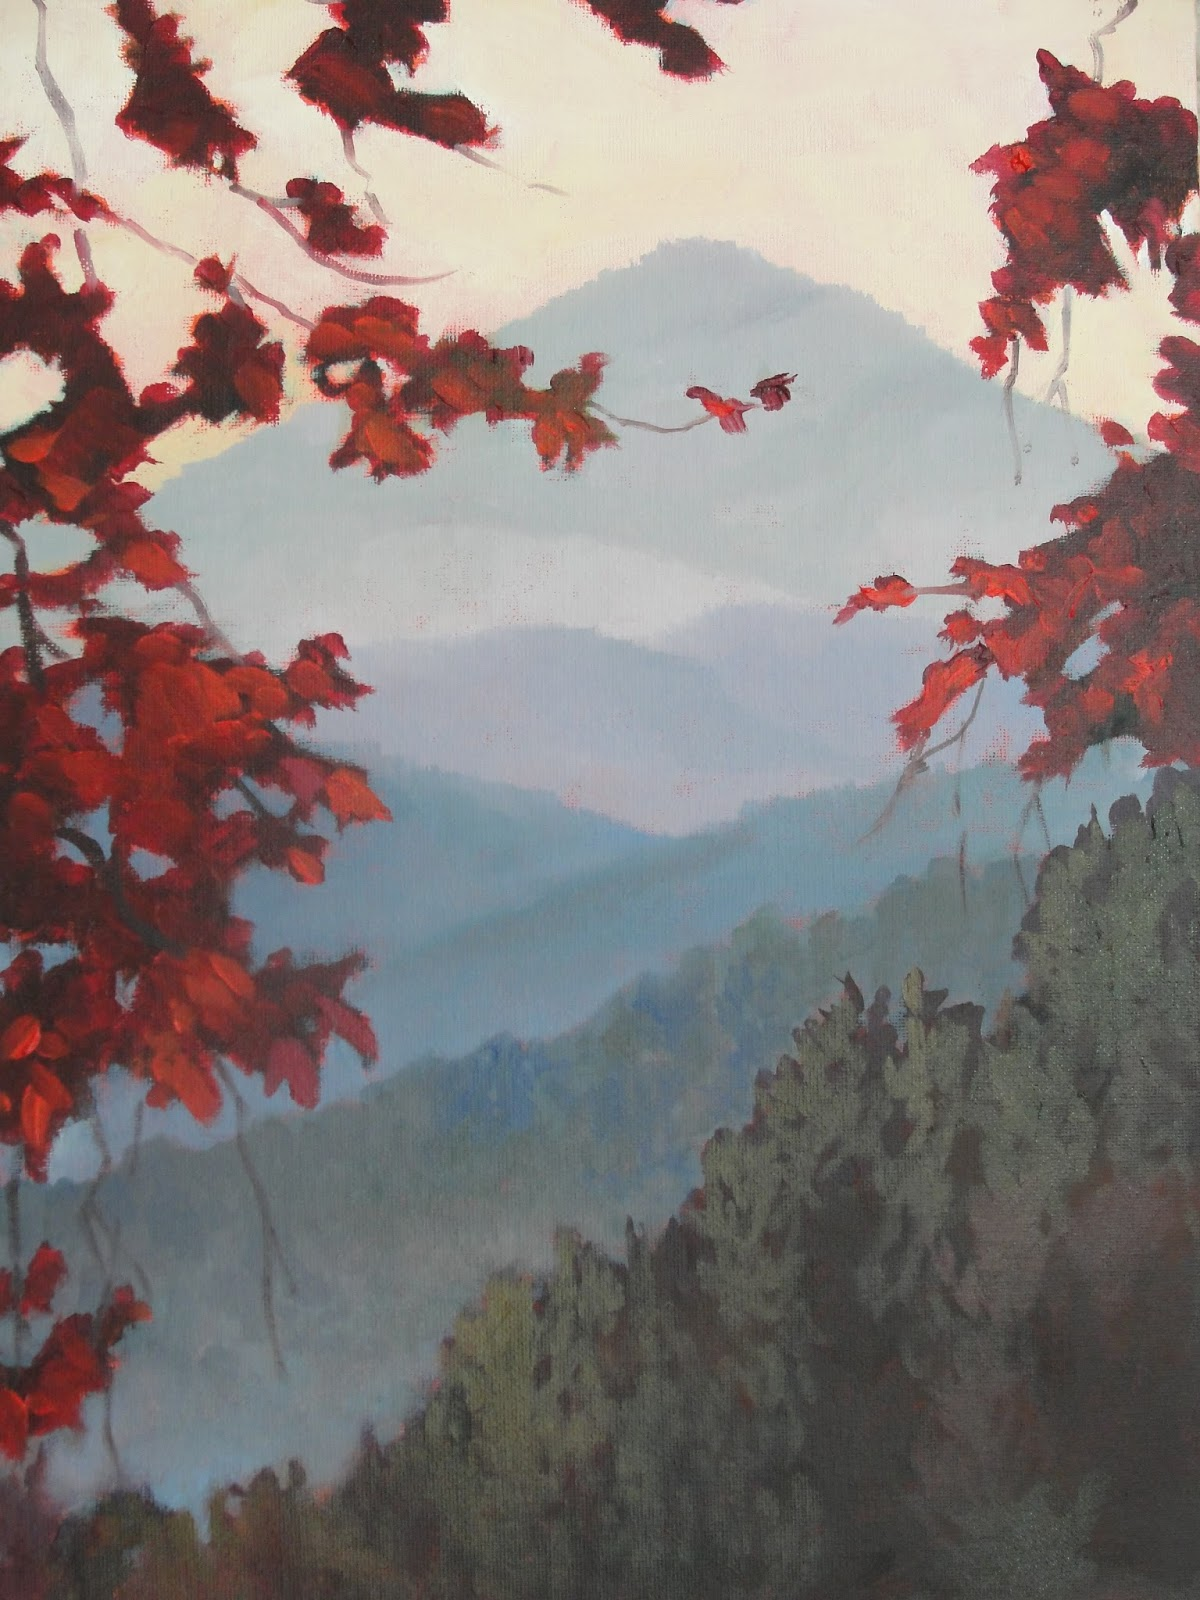 Blue ridge daily painter janet wimmer exploration and imagination for Raymond lord memorial swimming pool